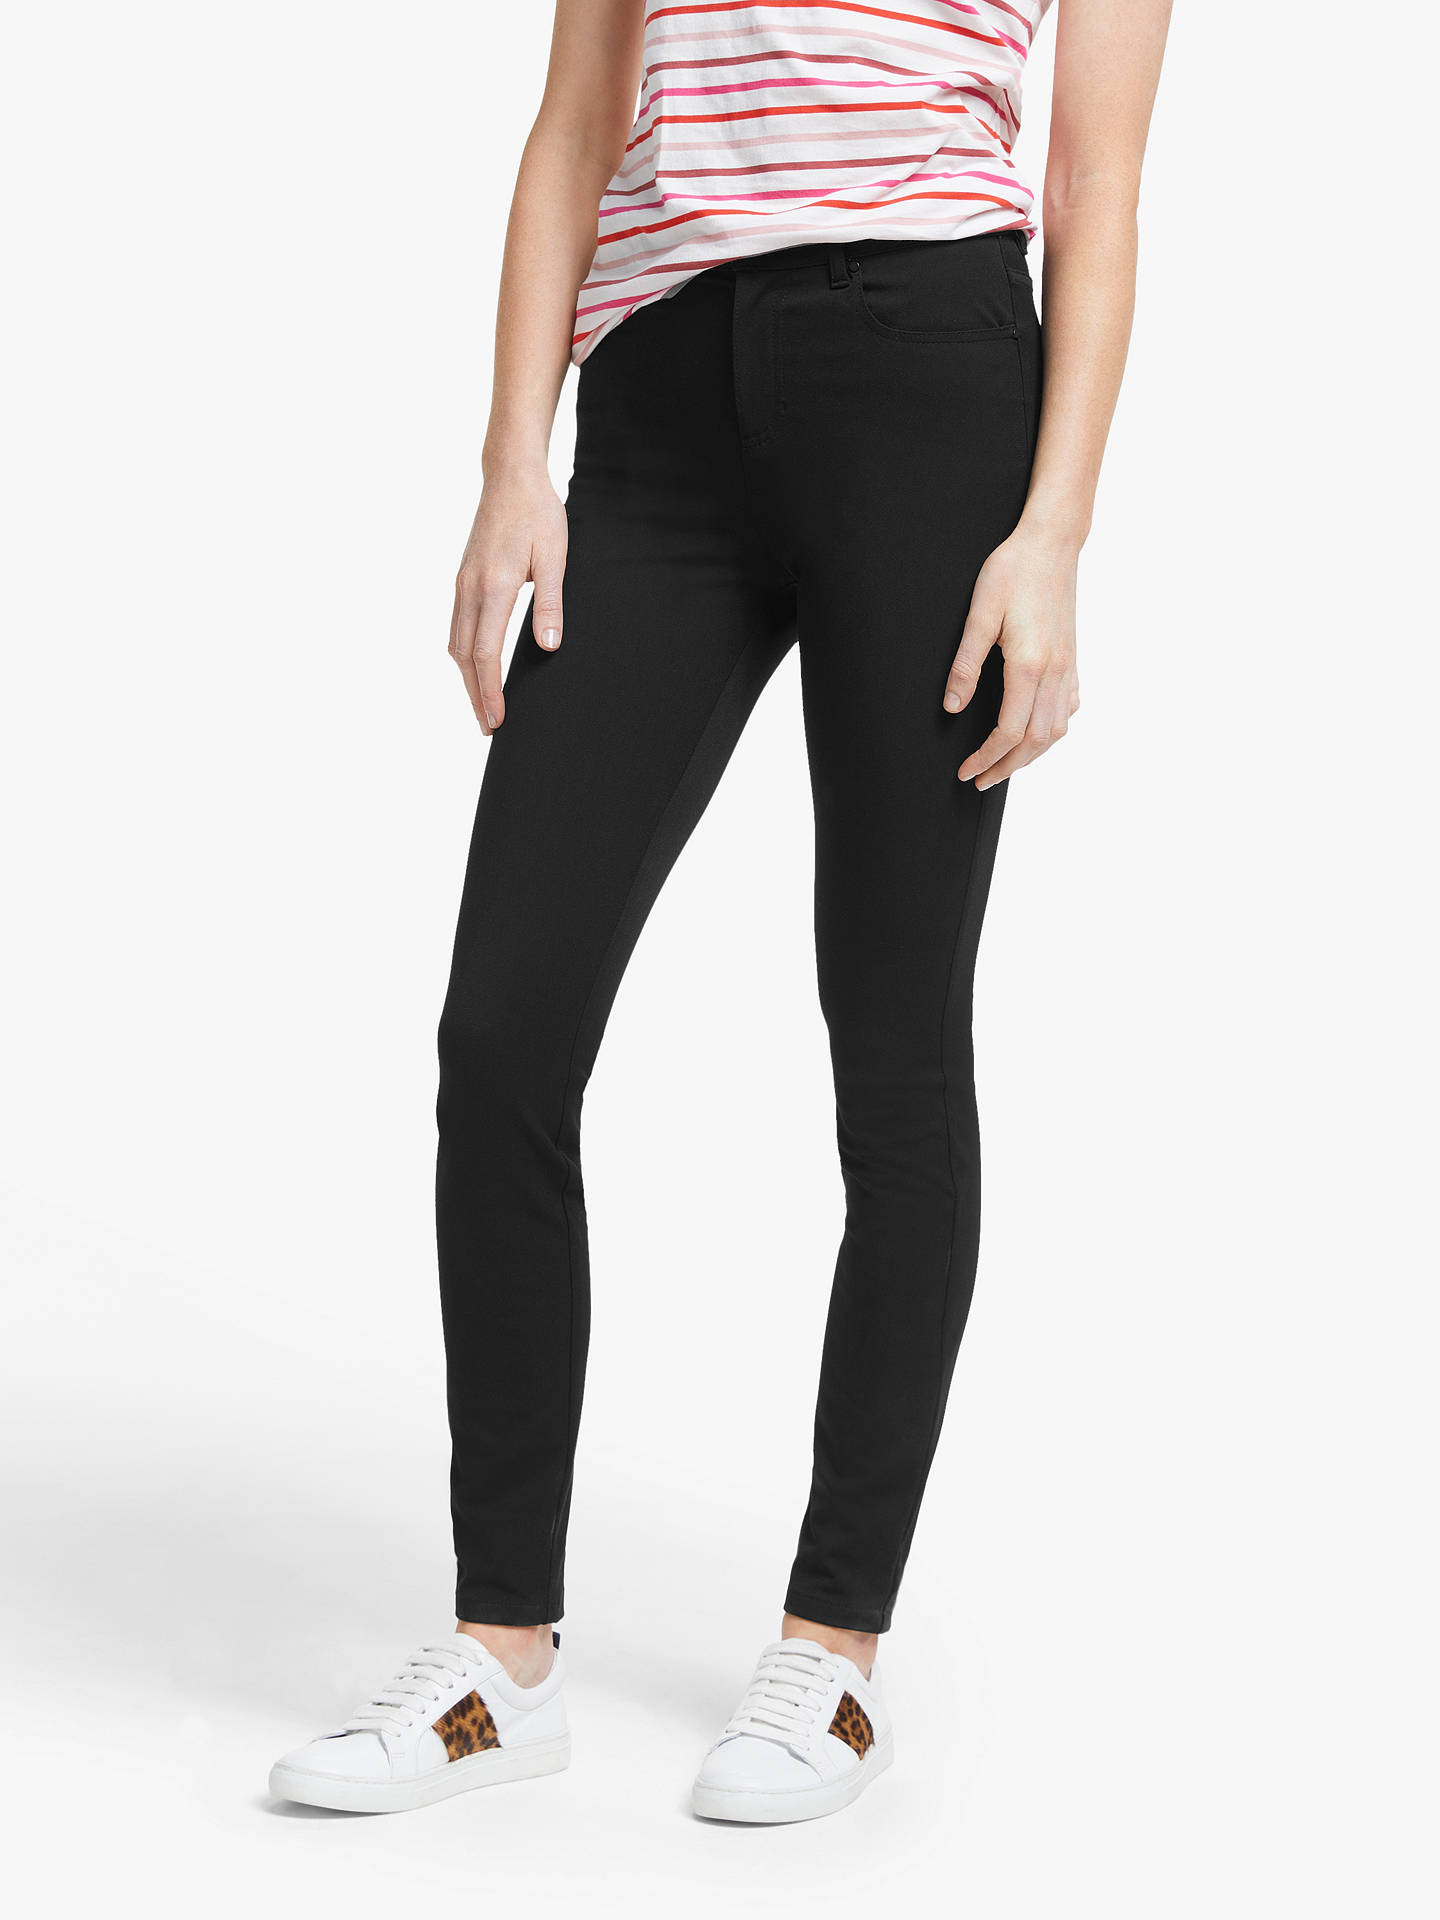 BuyBoden Mayfair Jeans, Black, 10 Online at johnlewis.com